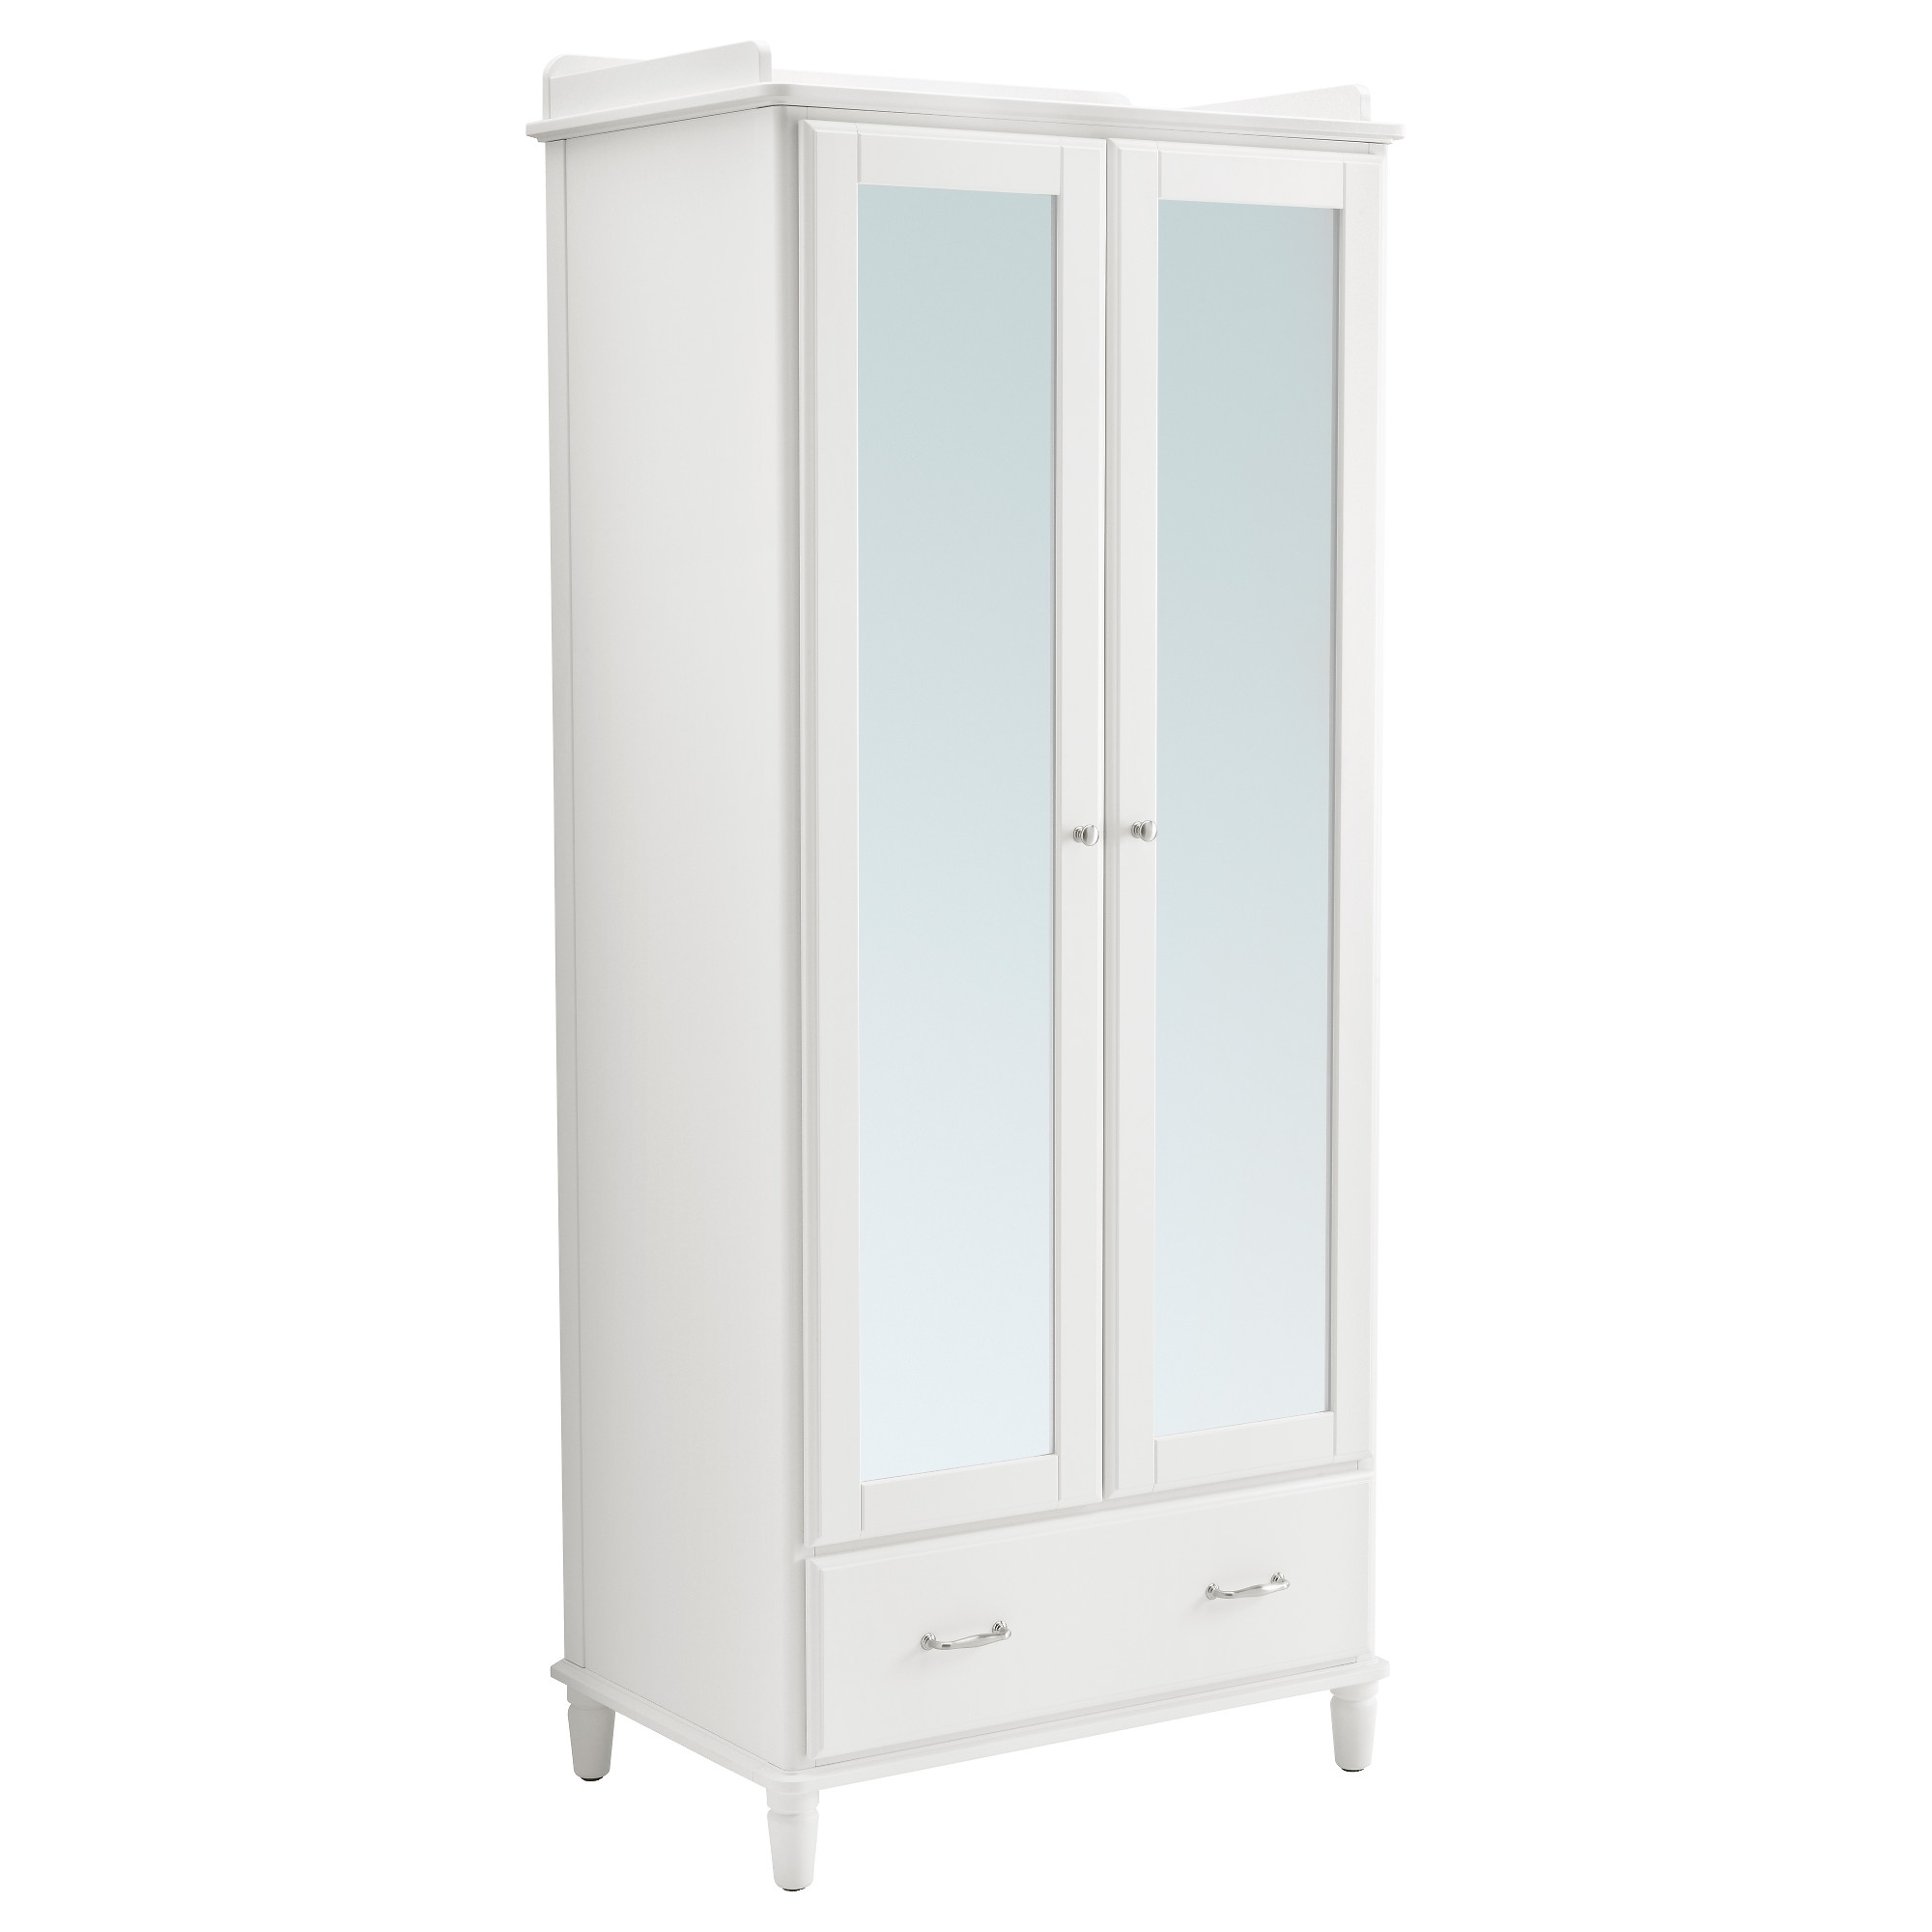 Widely Used White Wardrobes With Drawers And Mirror In Tyssedal Wardrobe – Ikea (View 15 of 15)